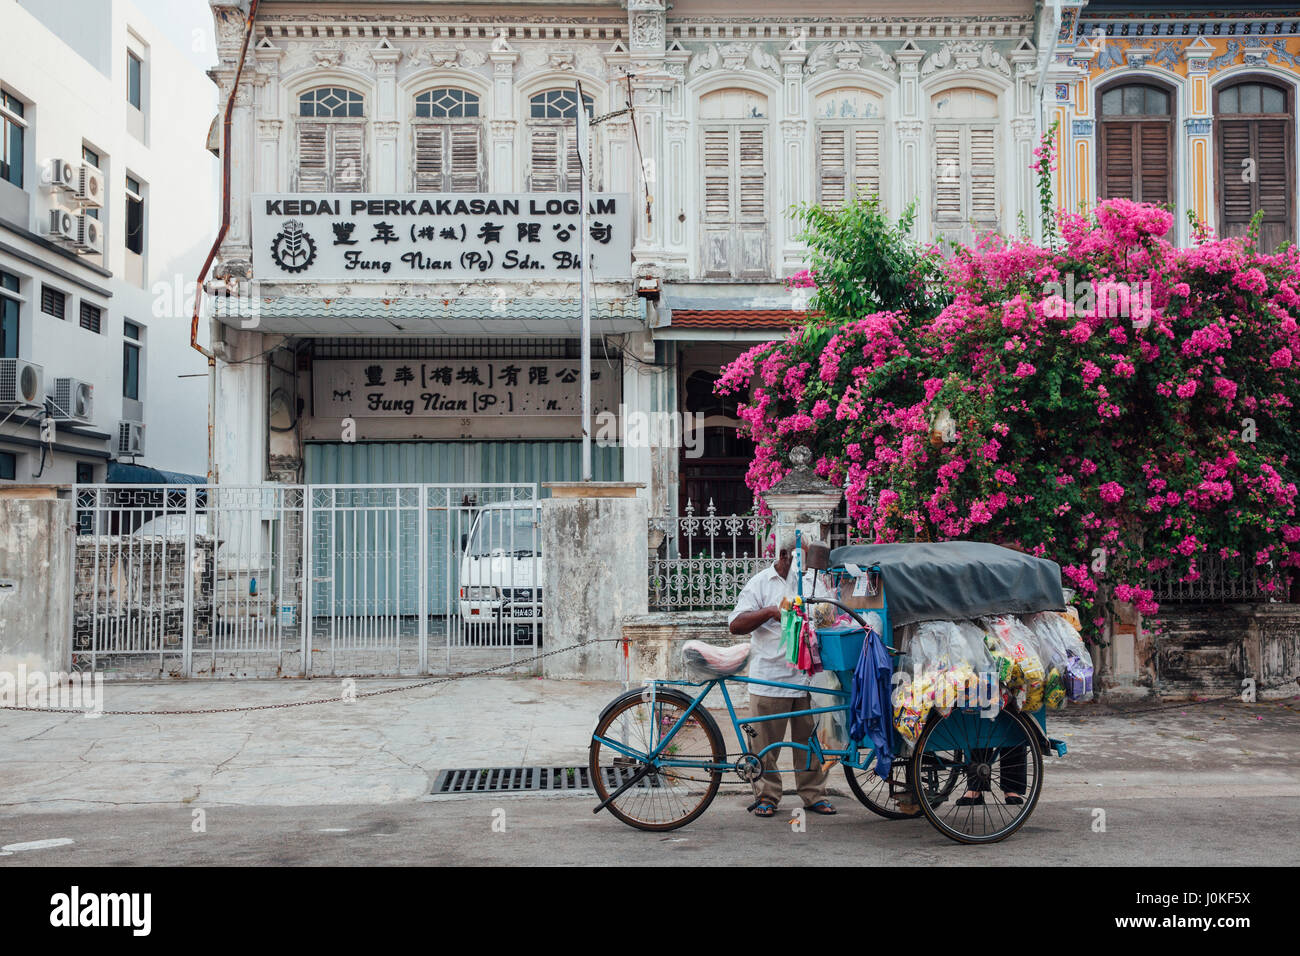 George Town,  Malaysia - March 22, 2016: Vendor sells snacks from the tricycle in UNESCO Heritage buffer zone in Stock Photo